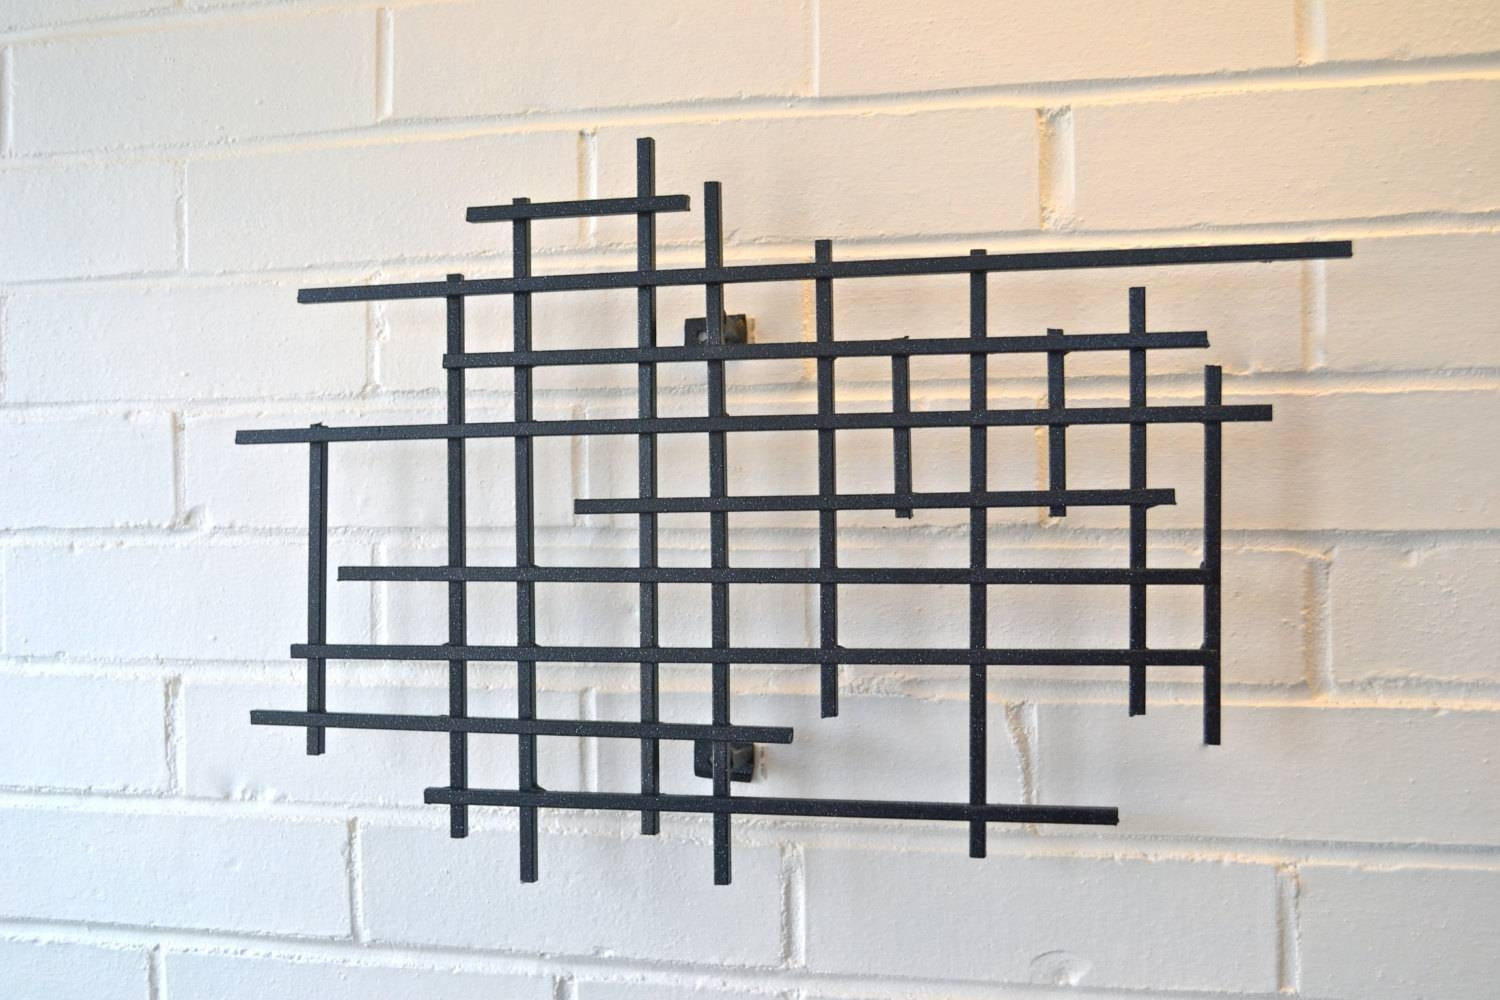 Small Square Metal Art Sculpture Modern Steel Decor Decoration 3D Pertaining To Most Recent Small Metal Wall Art (View 13 of 20)